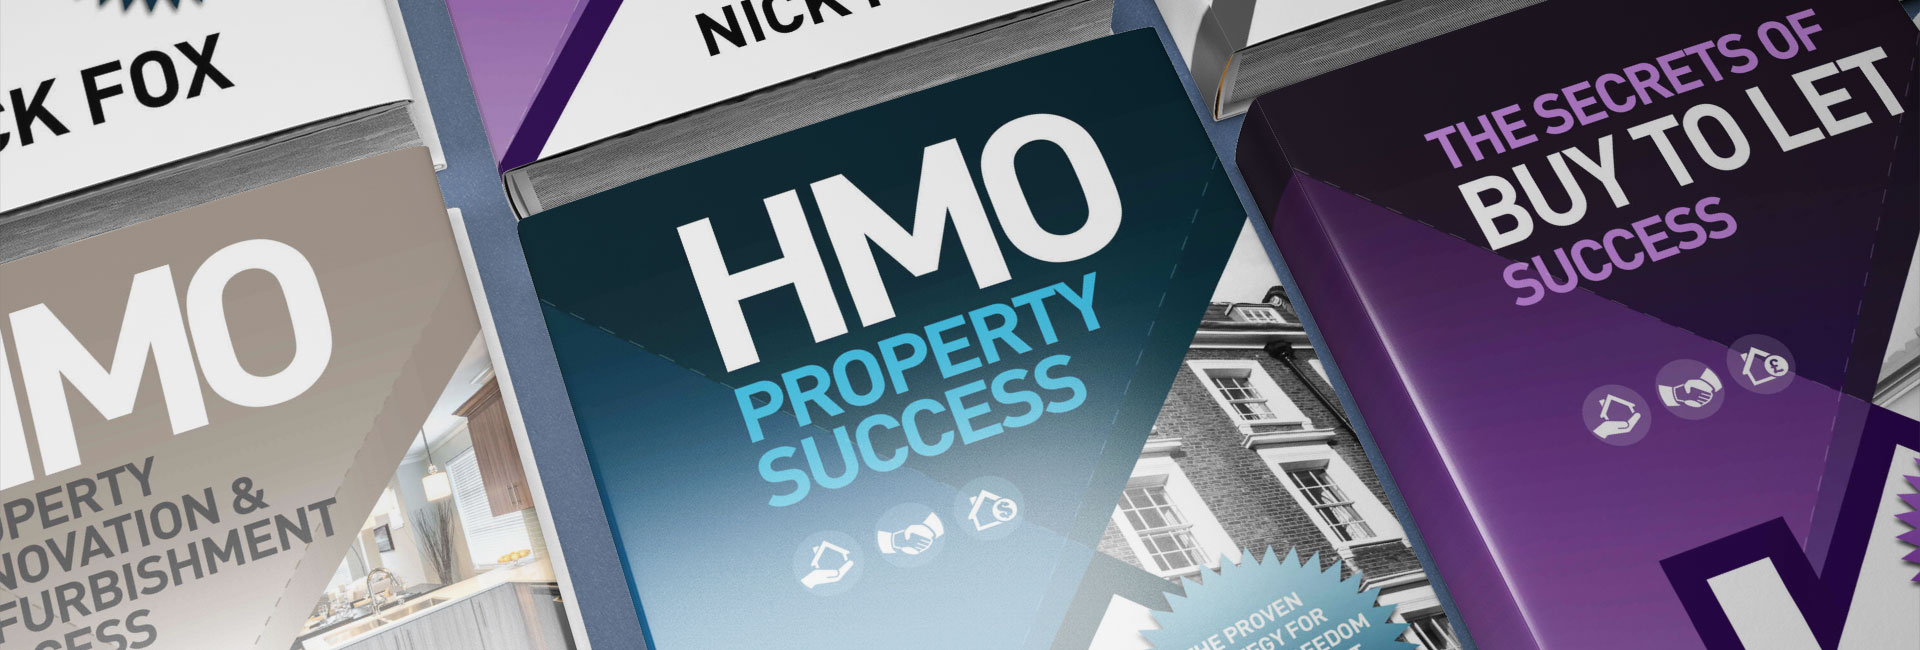 Invest in Your Property Journey with one of our great Resources Today!